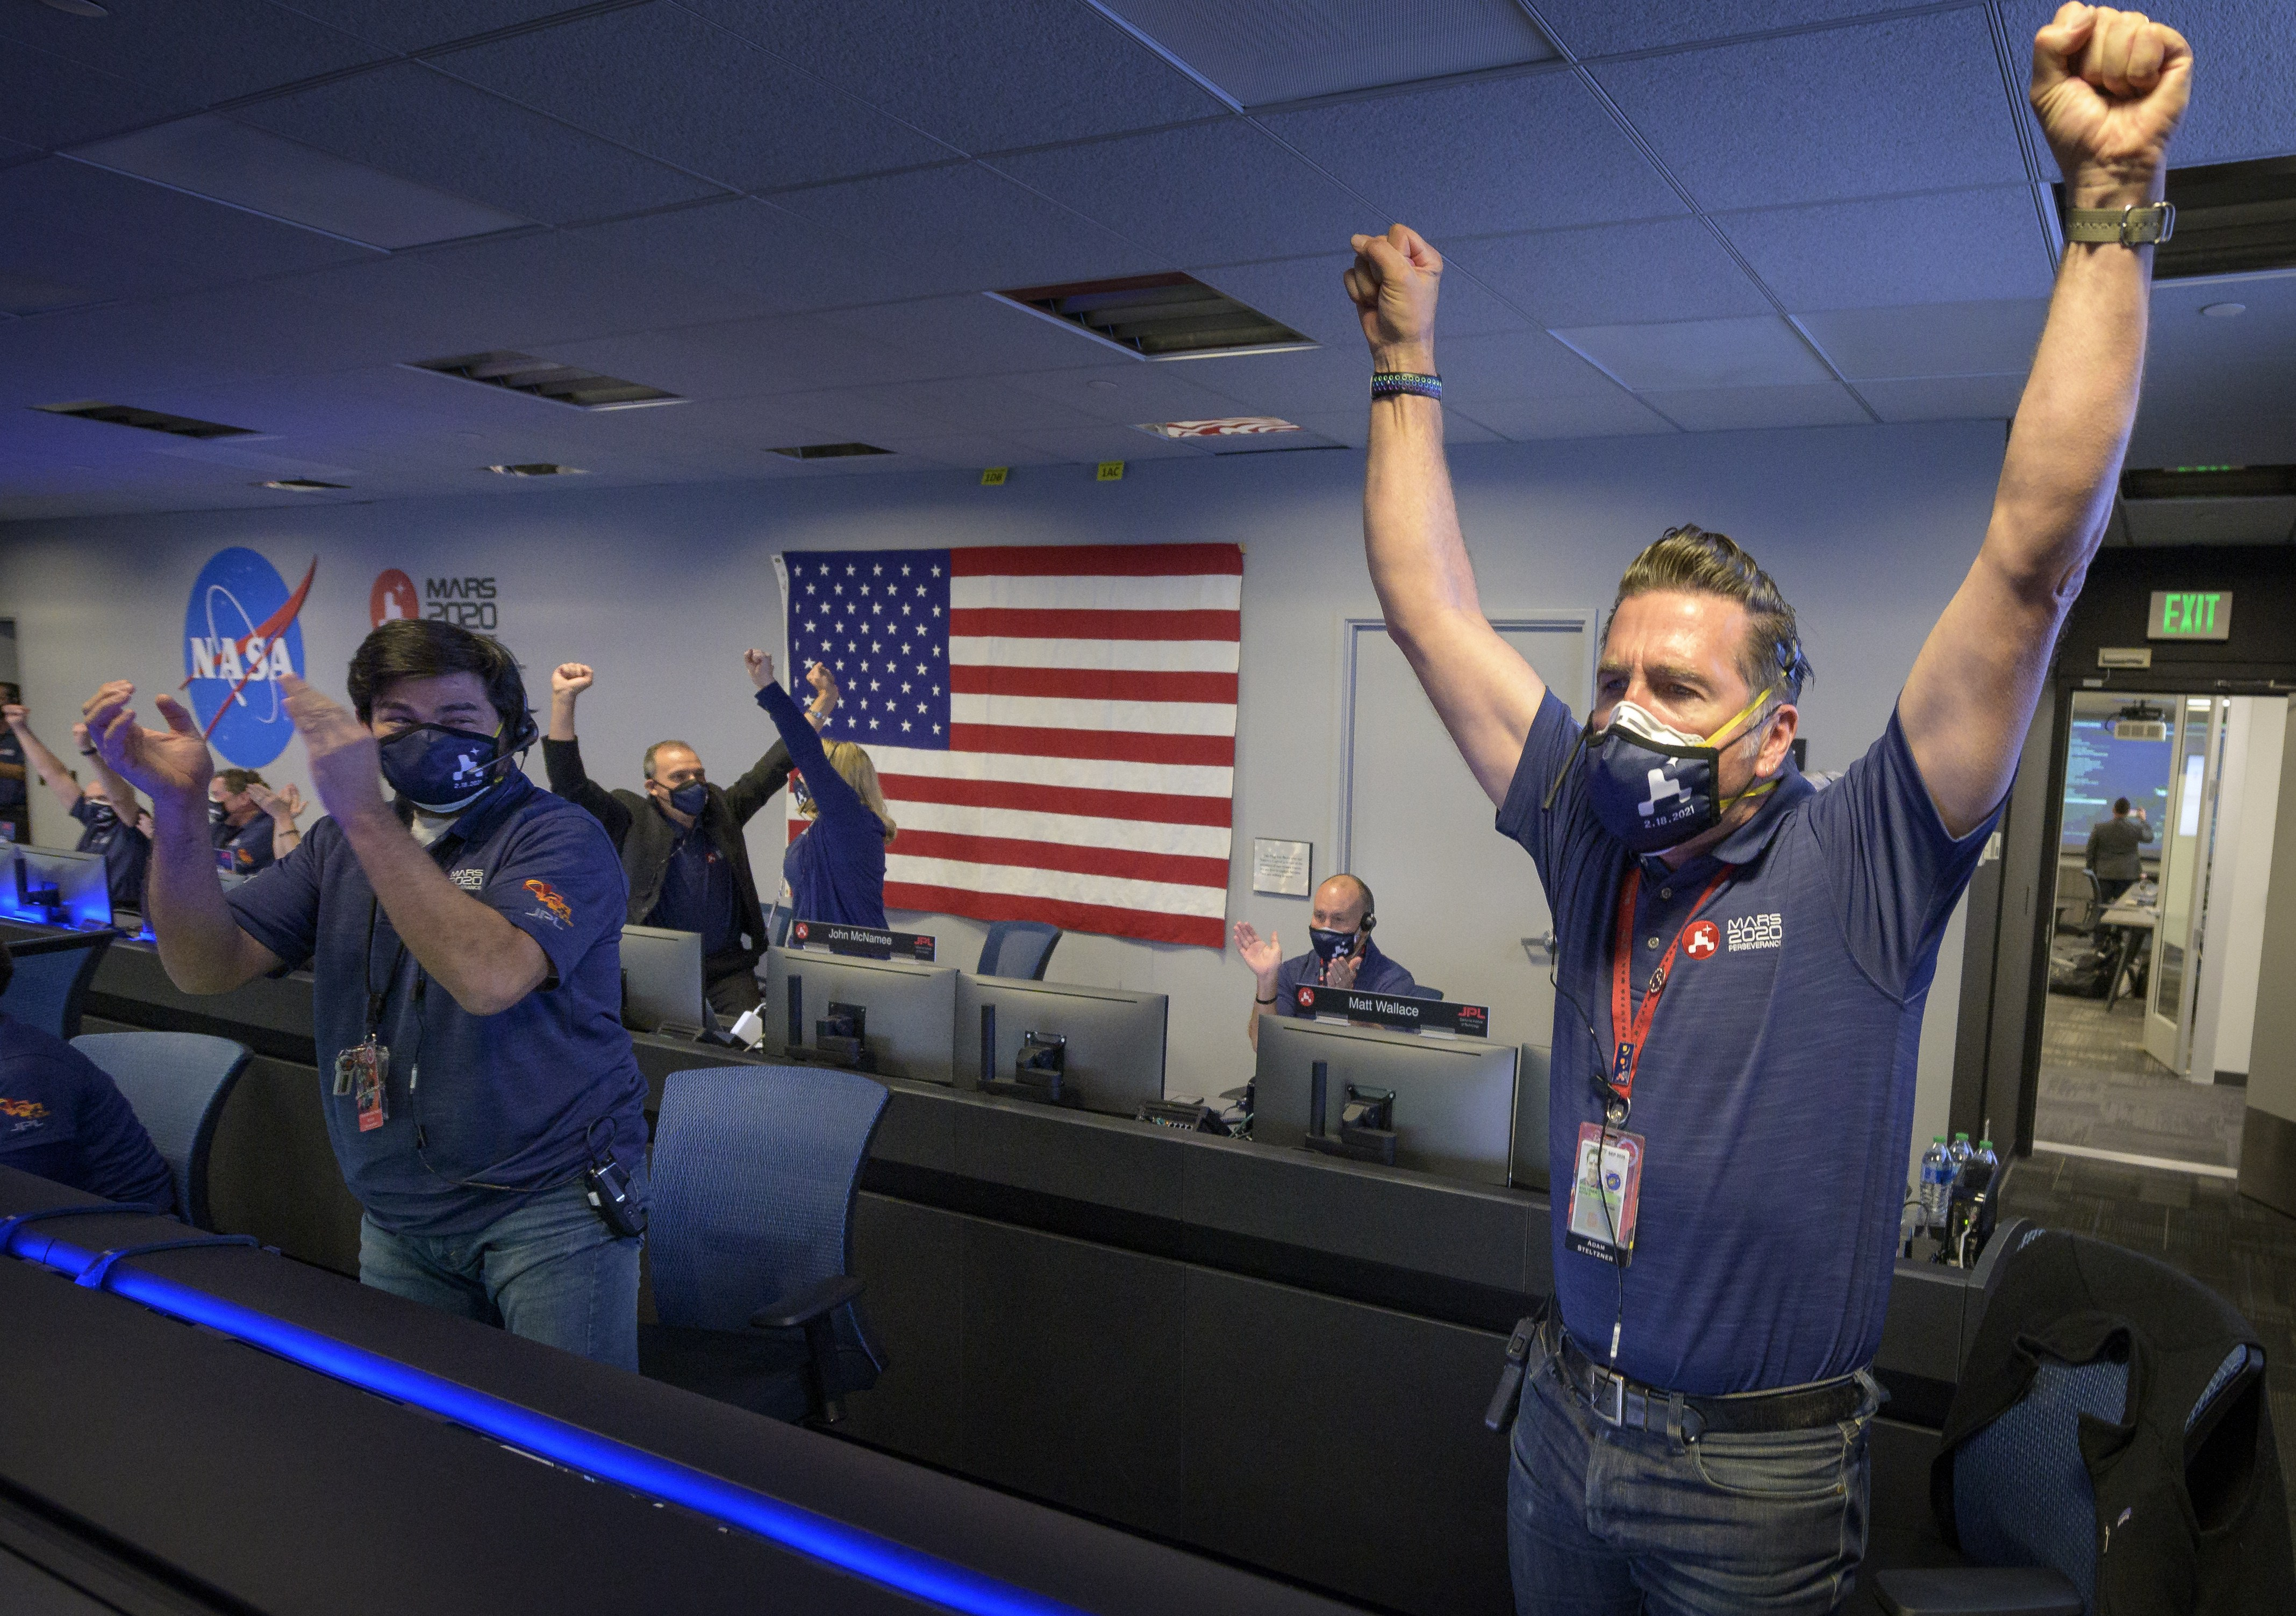 Members of NASA's Perseverance rover team react after receiving confirmation the spacecraft successfully touched down on Mars